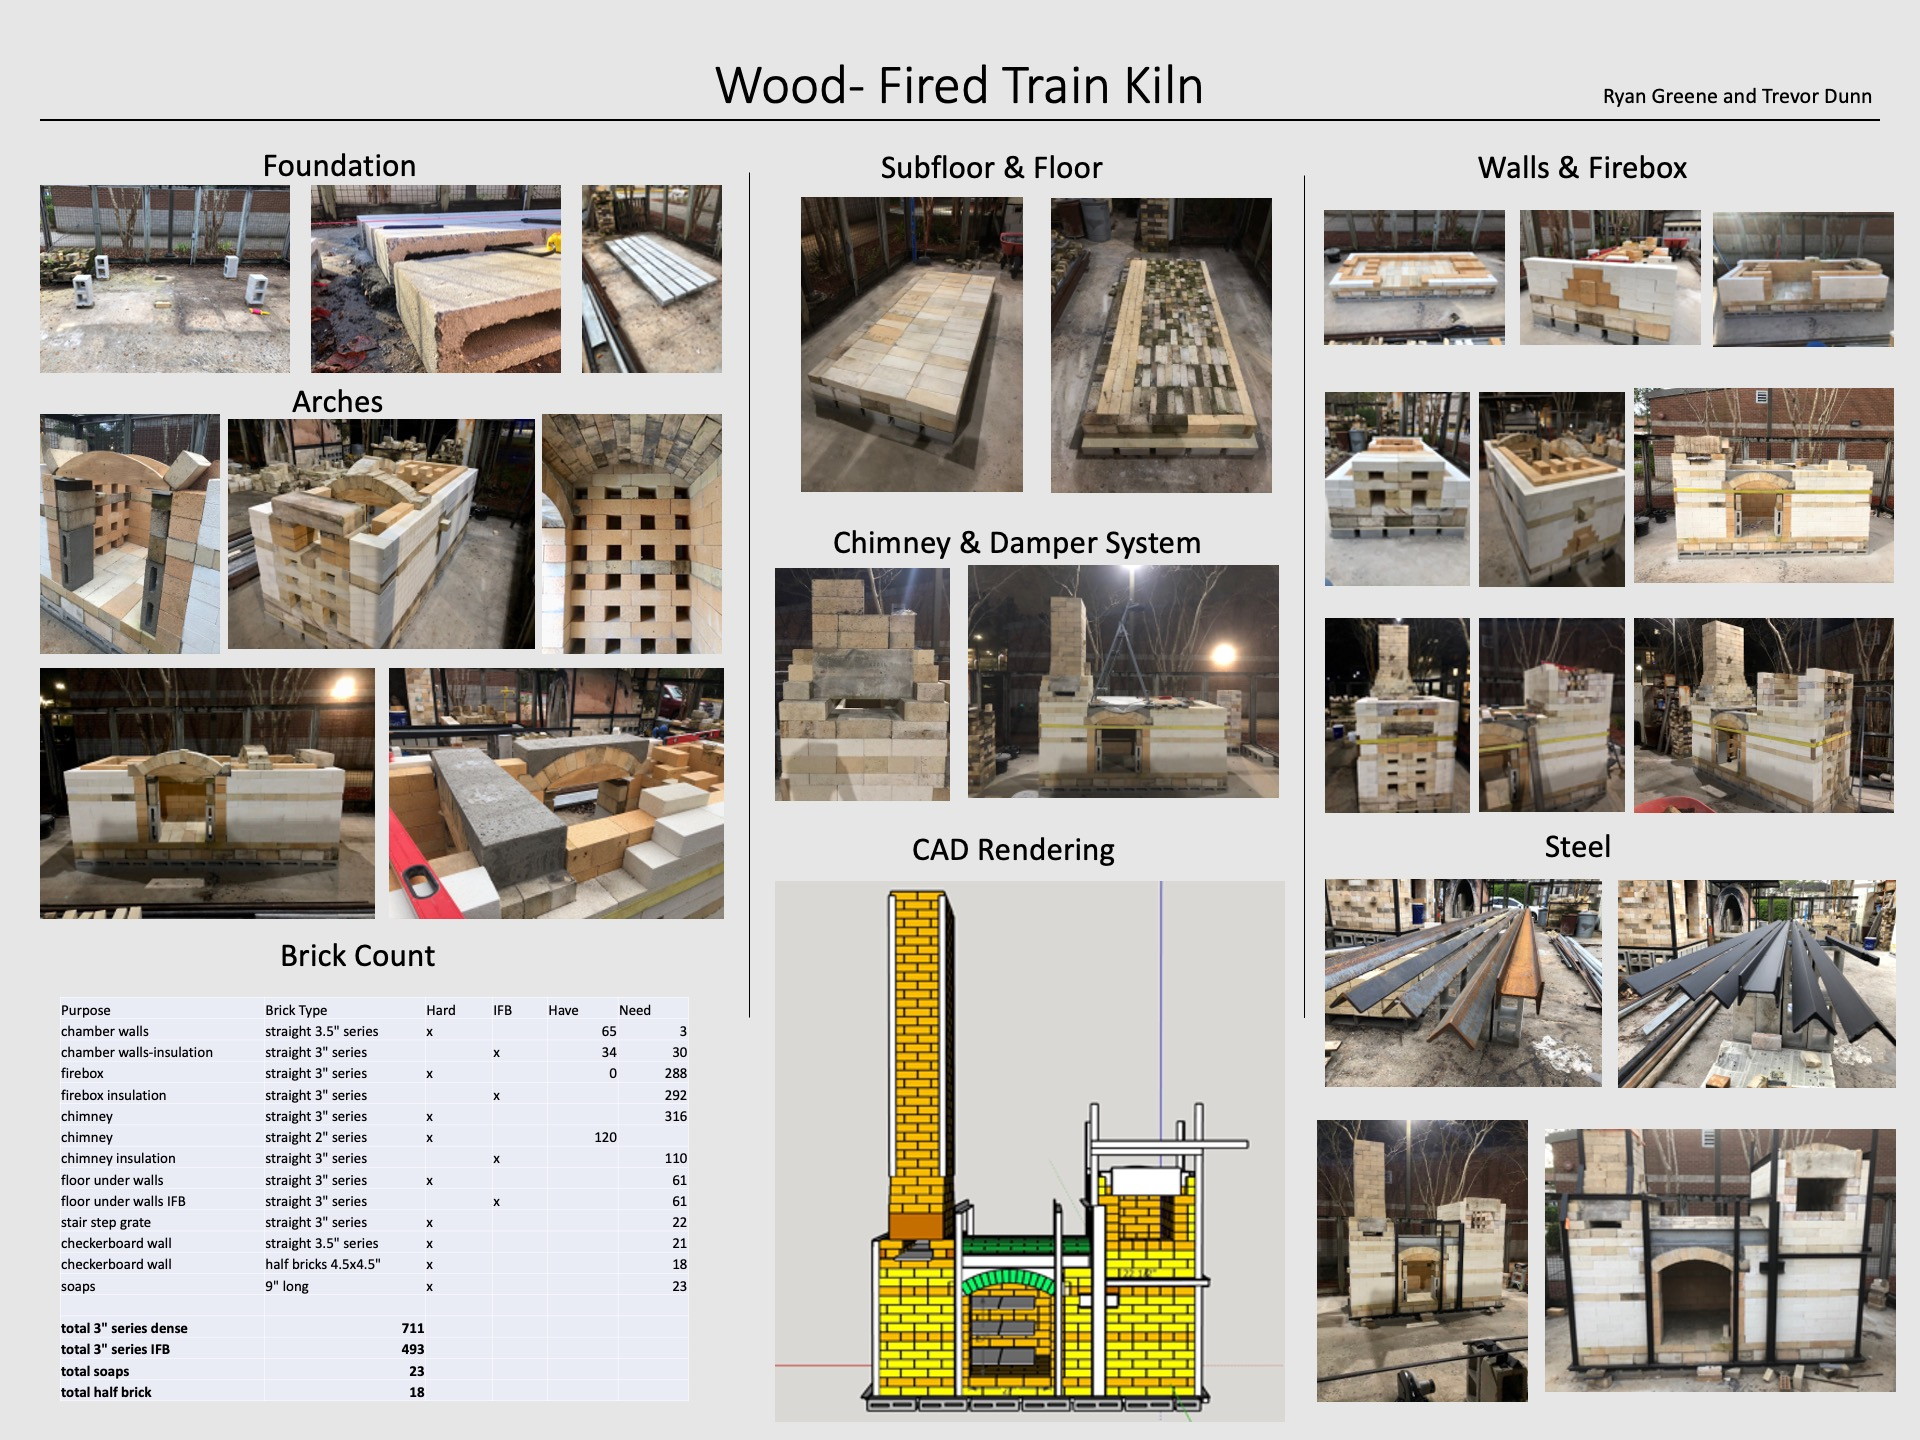 Wood-Fired Train Kiln poster